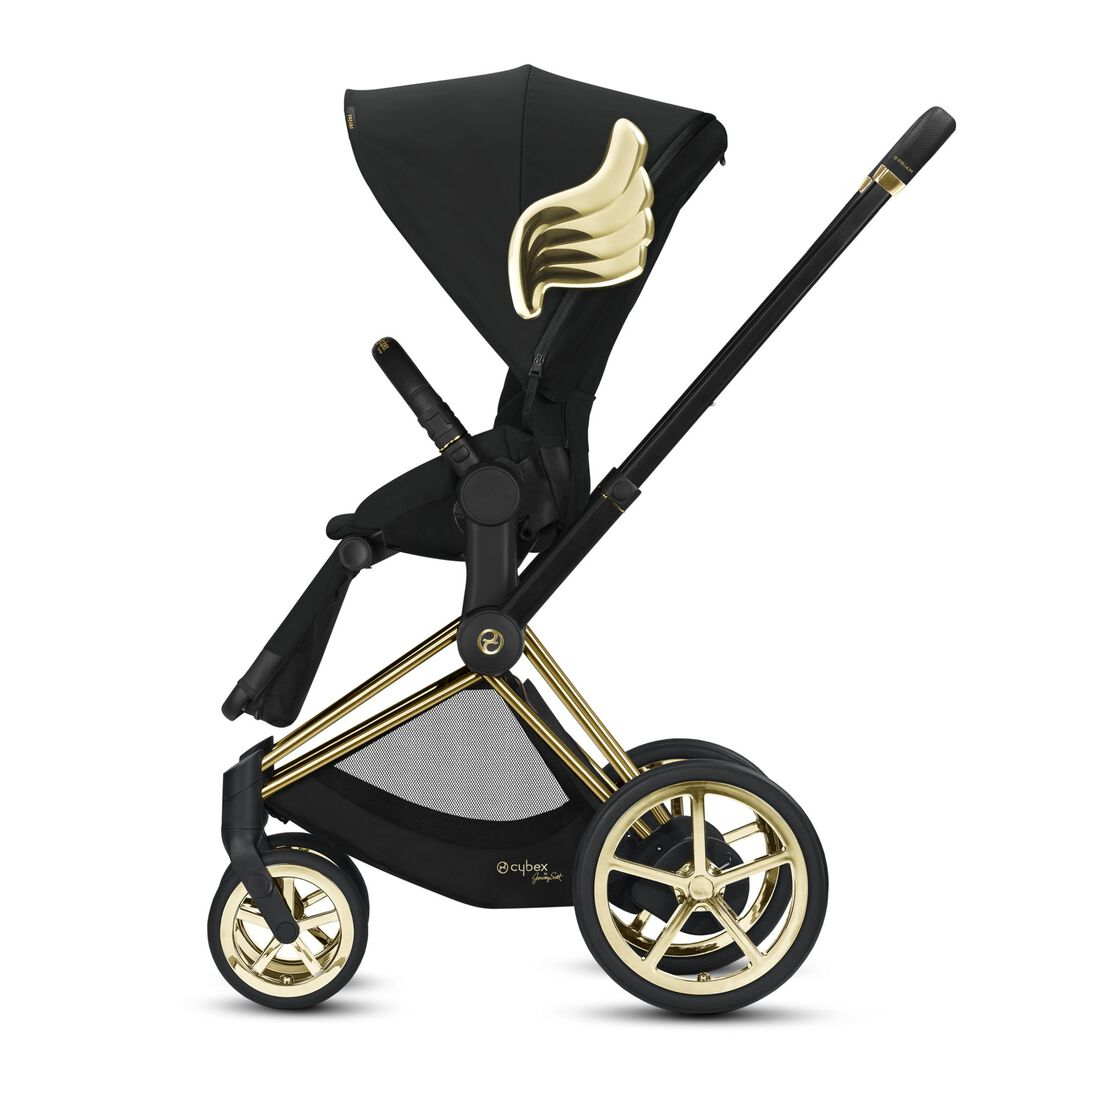 CYBEX by Jeremy Scott Cherubs